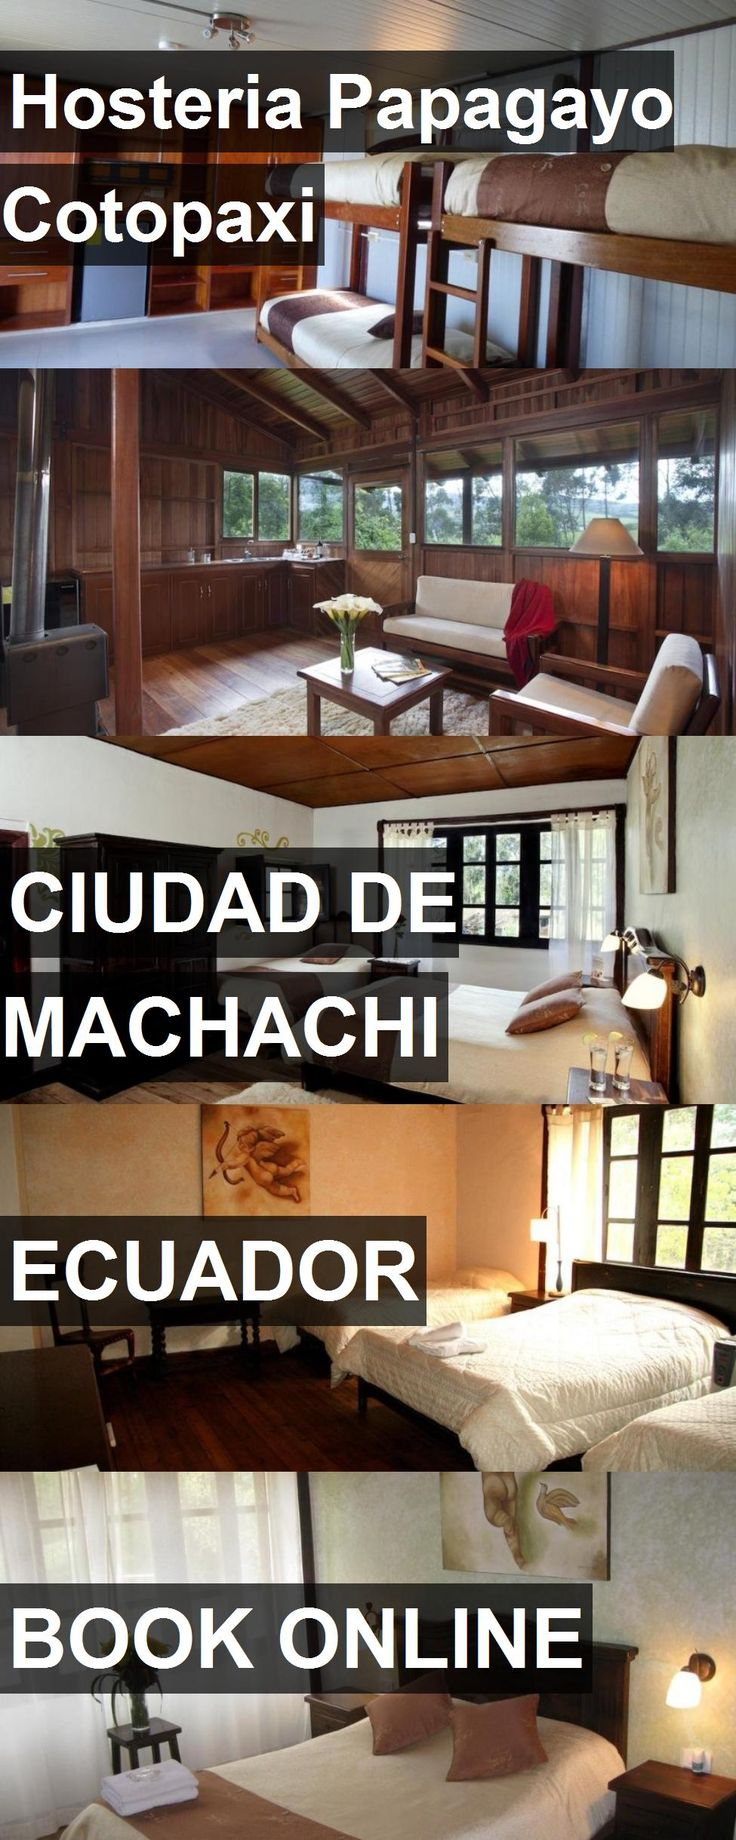 Hotel Hosteria Papagayo Cotopaxi in Ciudad de Machachi, Ecuador. For more information, photos, reviews and best prices please follow the link. #Ecuador #CiudaddeMachachi #HosteriaPapagayoCotopaxi #hotel #travel #vacation